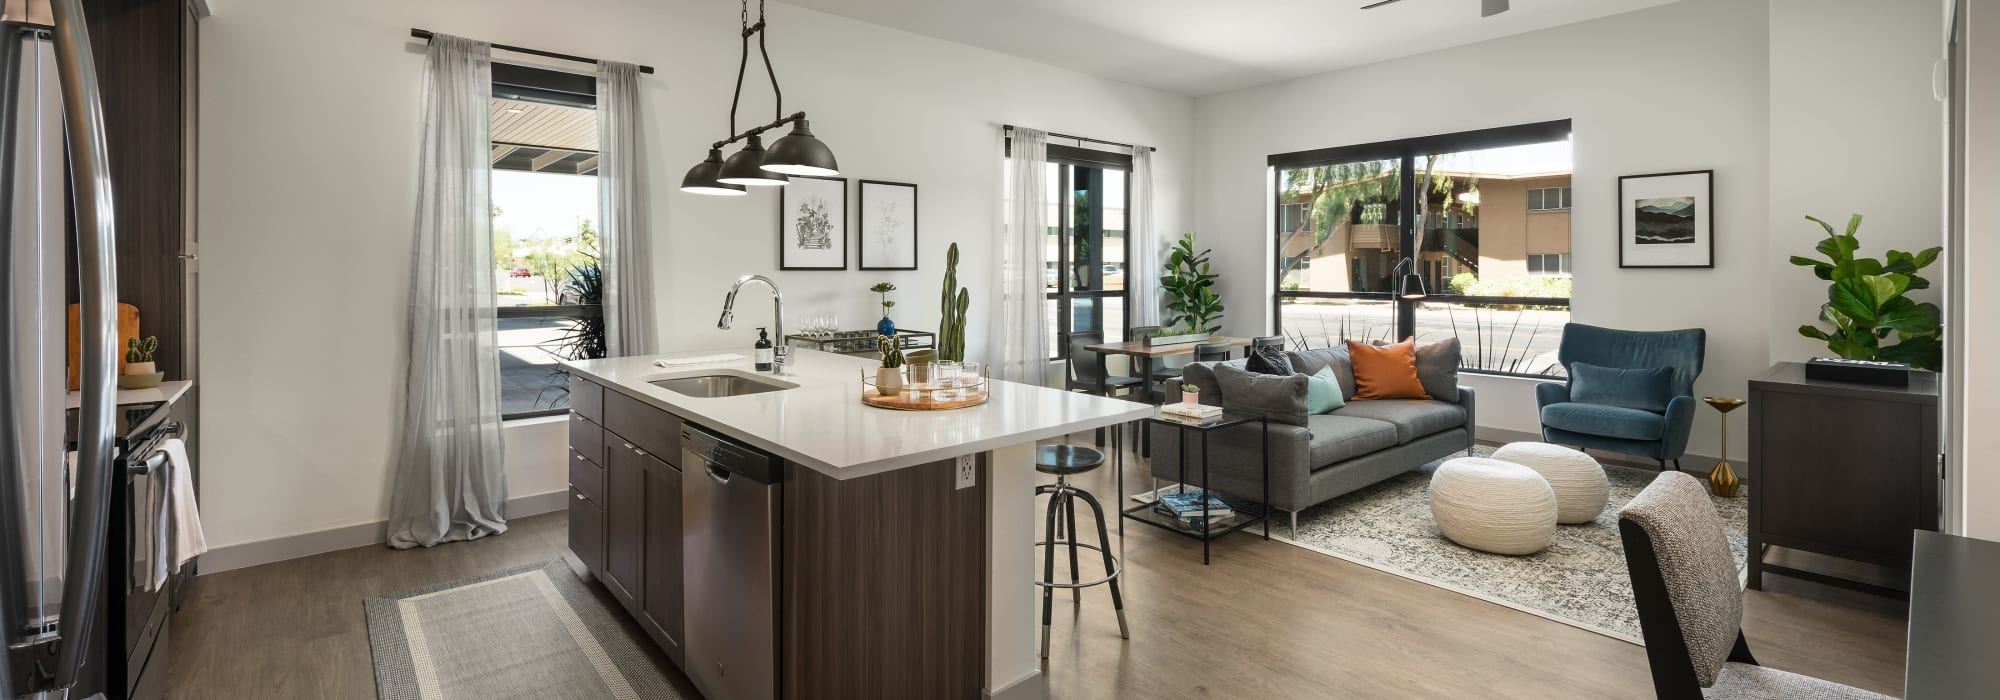 Spacious Kitchen and living room at The Astor at Osborn in Phoenix, Arizona